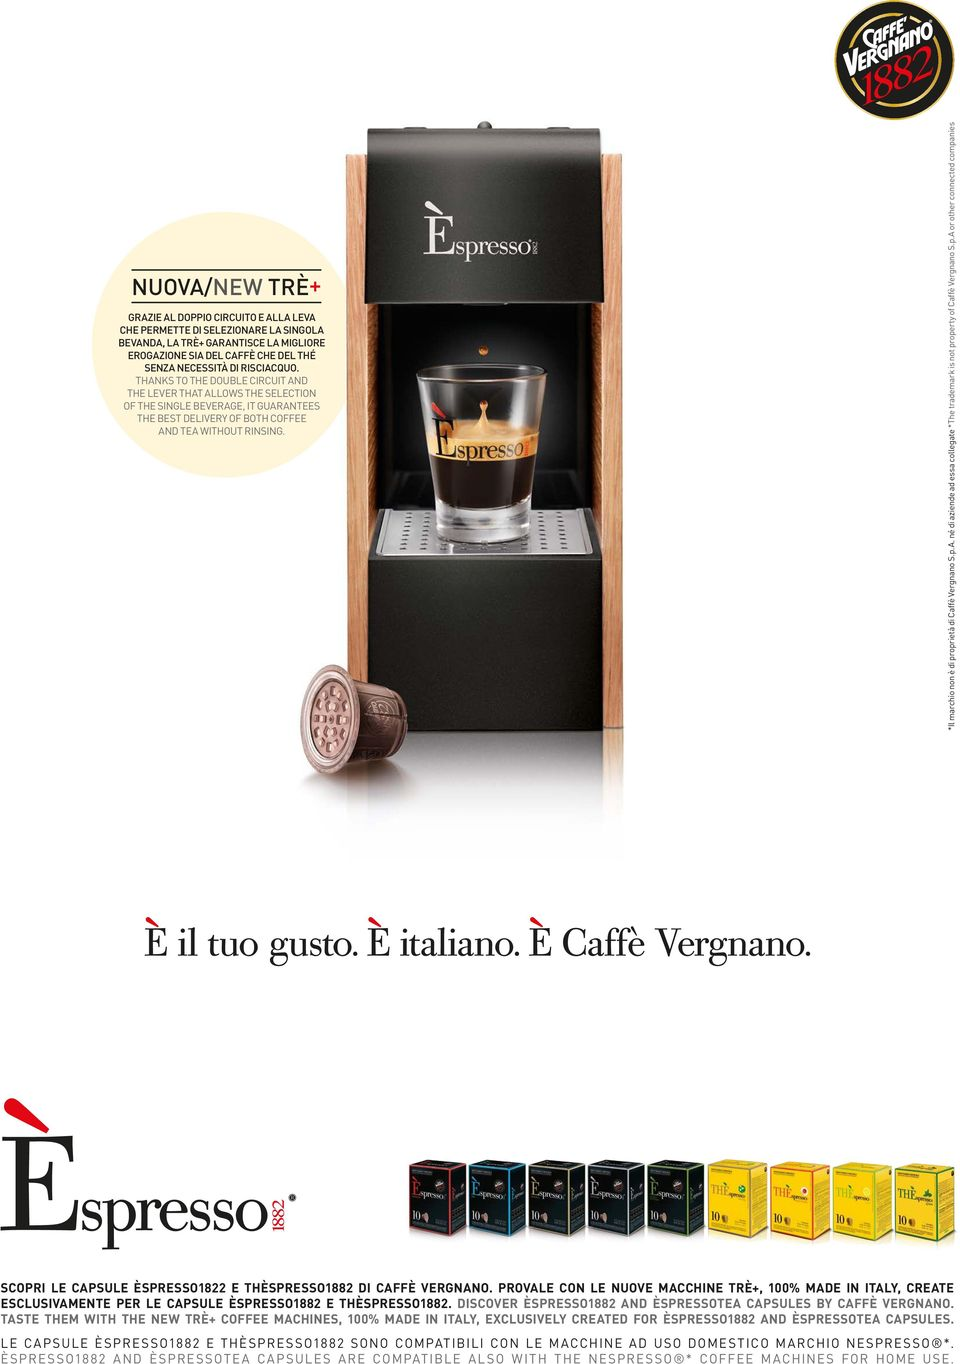 *Il marchio non è di proprietà di Caffè Vergnano S.p.A. né di aziende ad essa collegate *The trademark is not property of Caffè Vergnano S.p.A or other connected companies SCOPRI LE CAPSULE ÈSPRESSO1822 E THÈSPRESSO1882 DI CAFFÈ VERGNANO.